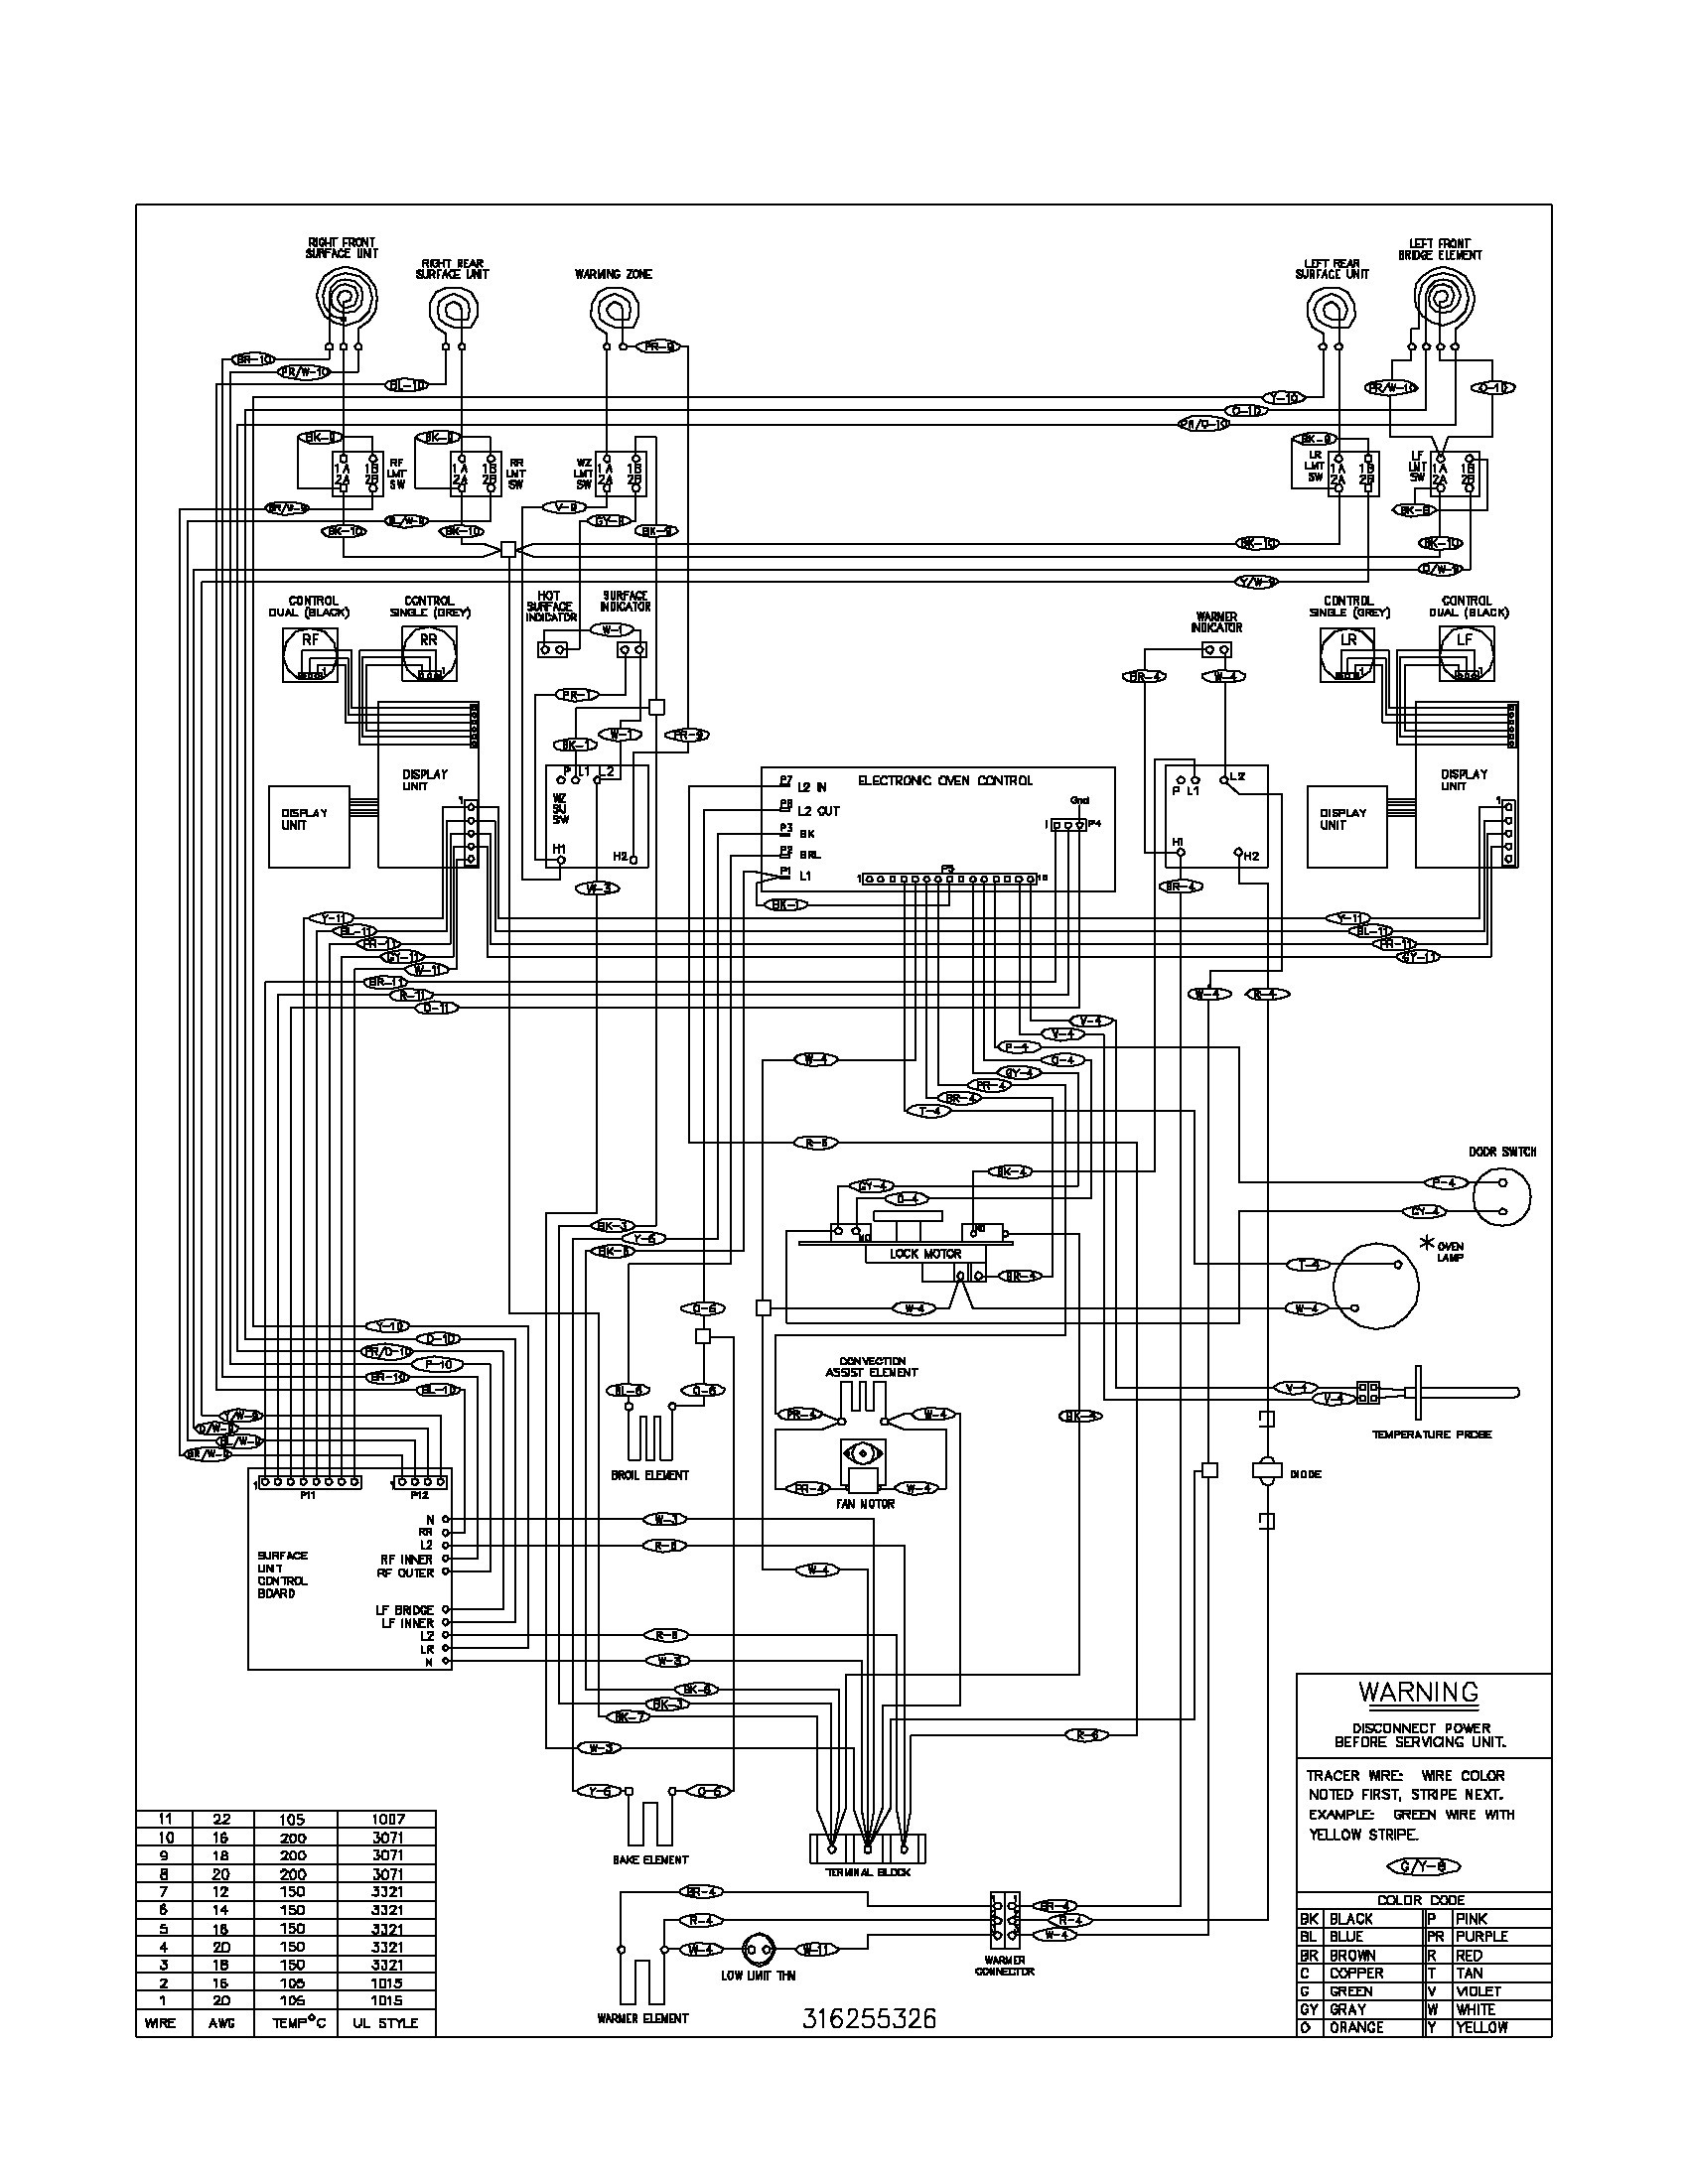 Electric Furnace Wiring Diagram Sequencer | Free Wiring Diagram on